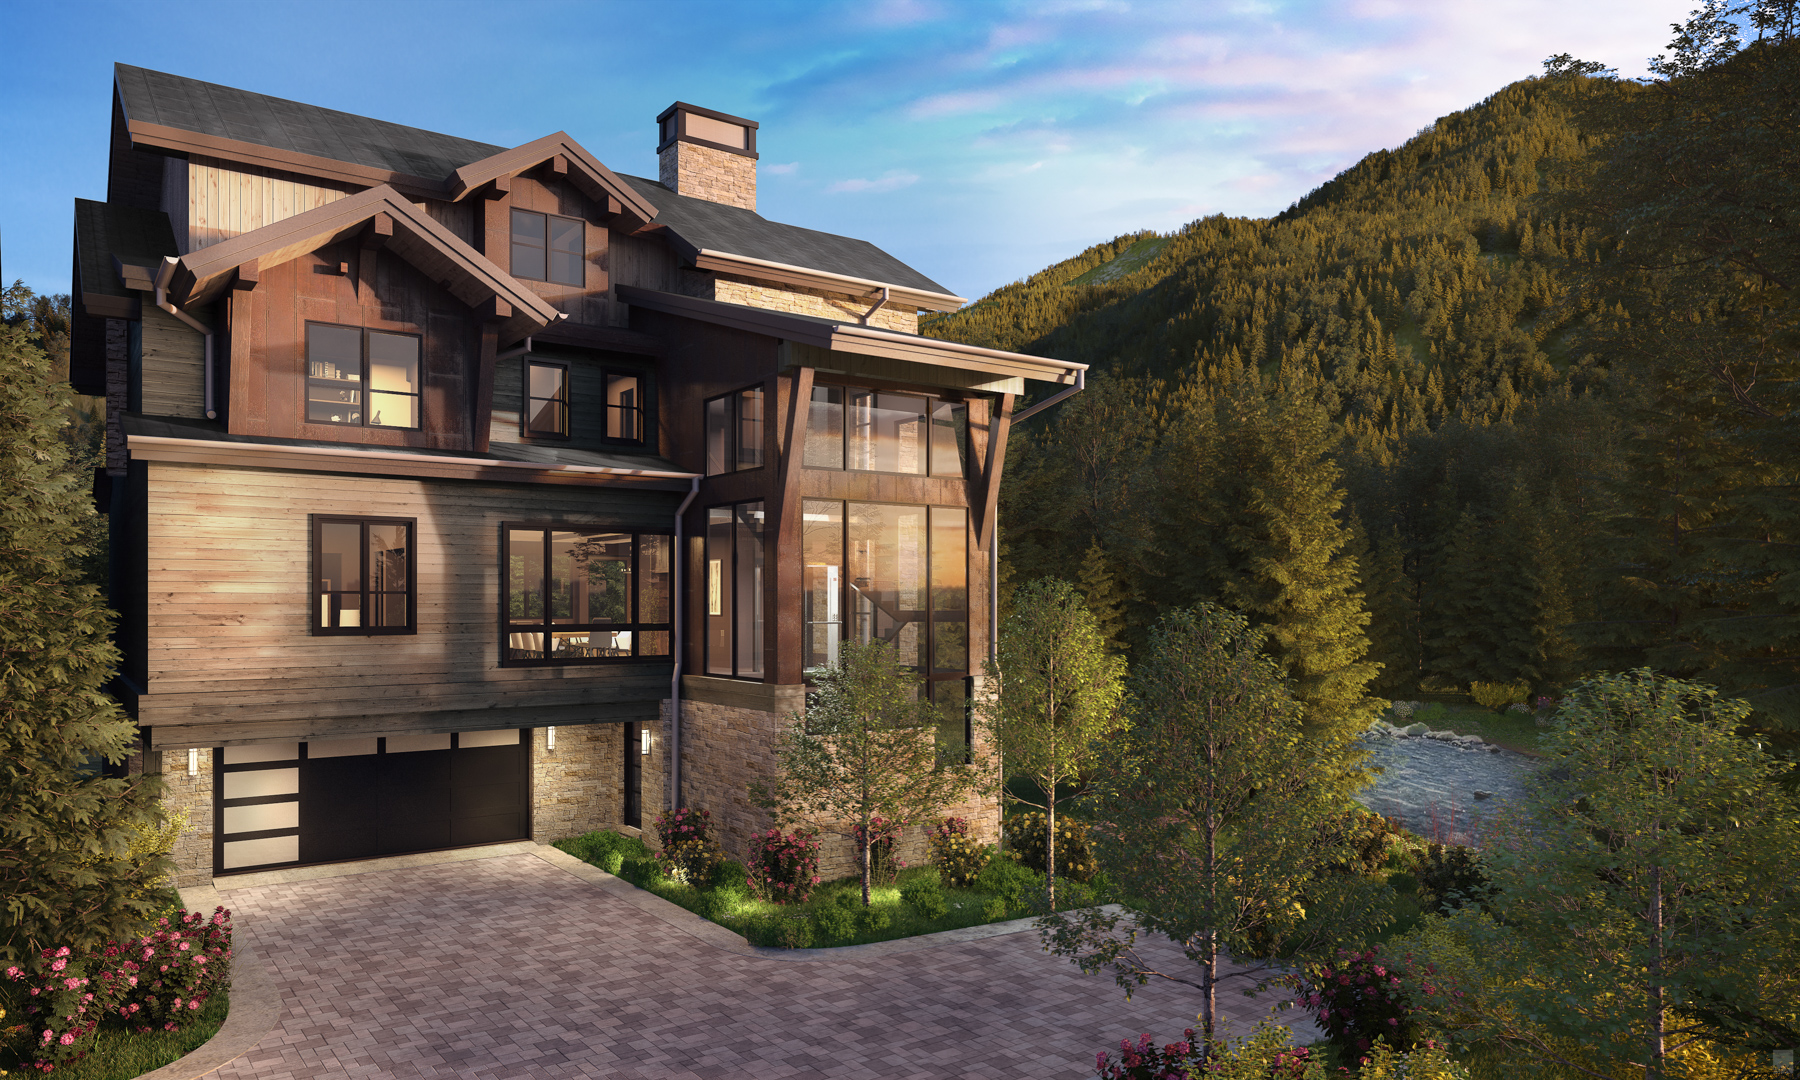 Exterior image of one of the Villas in Summer